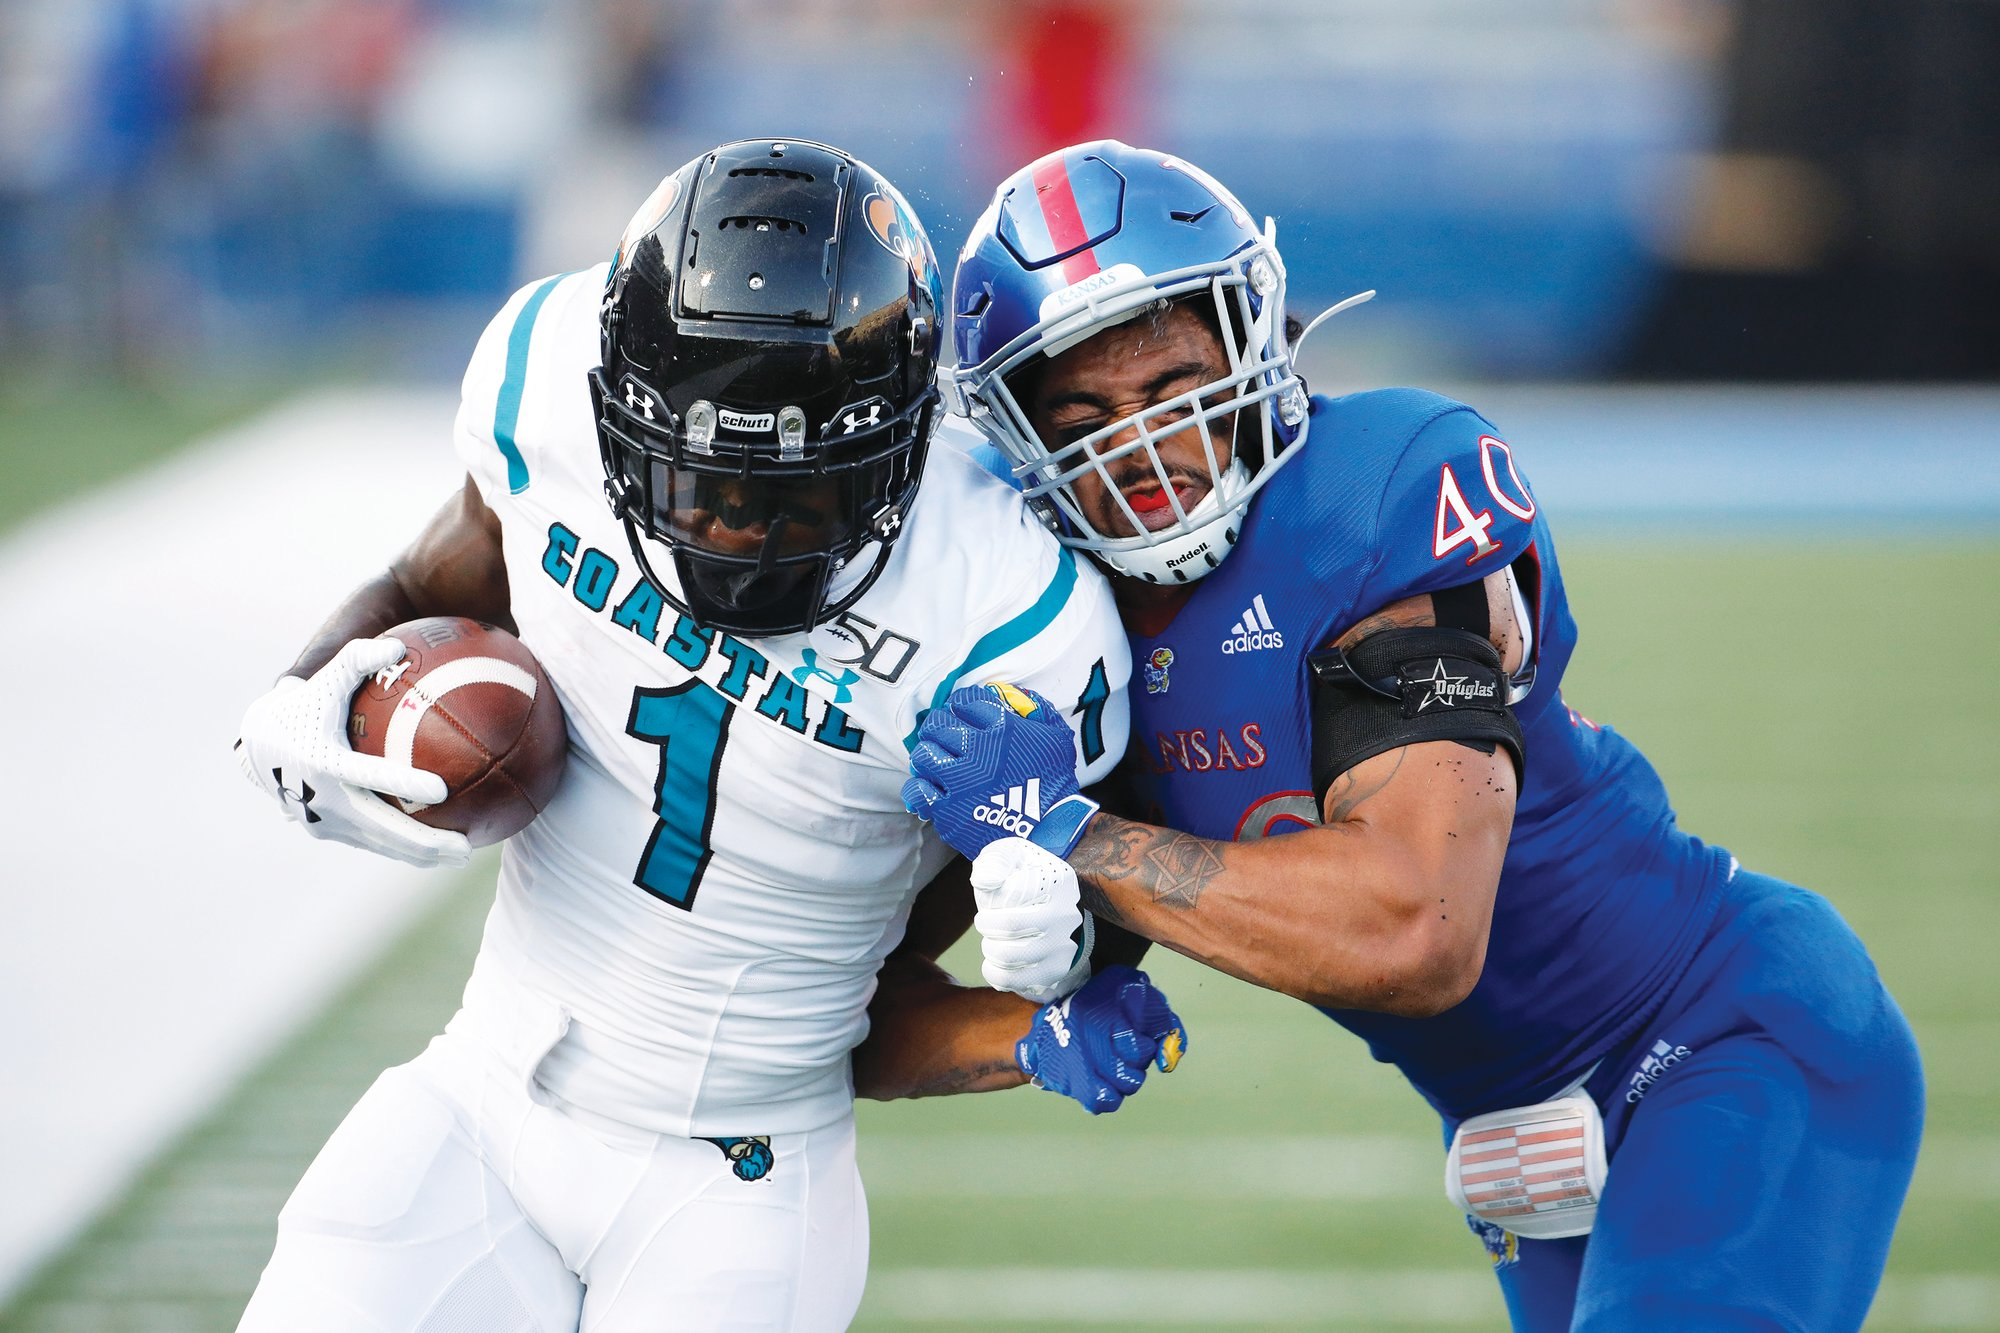 Coastal Carolina running back CJ Marable (1) ran for two touchdowns as the Chanticleers upset Kansas 12-7 last year.